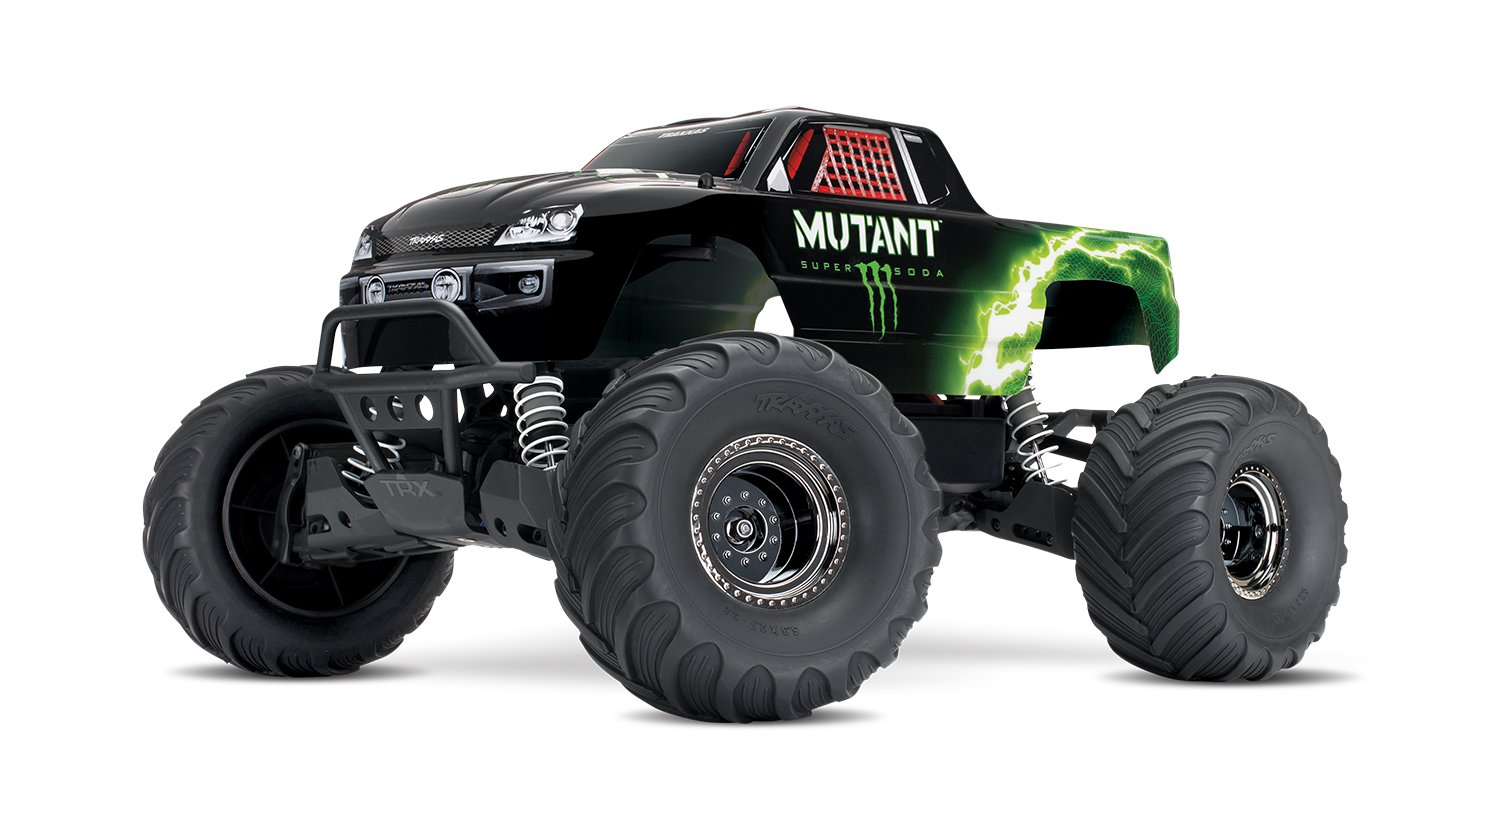 Limited-edition Monster Mutant Stampede 4X4 -XL5, RTR